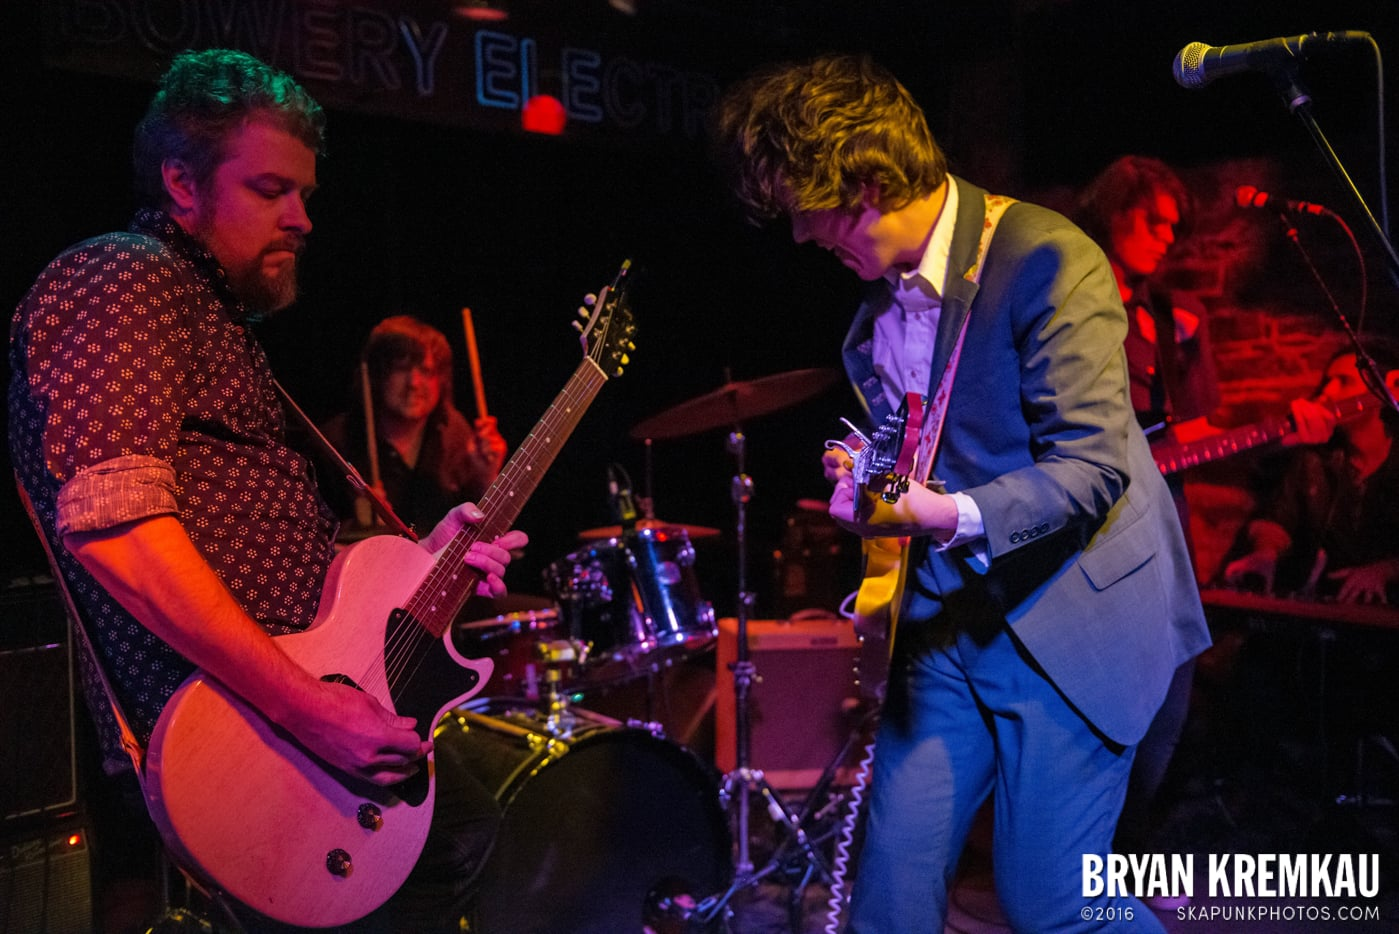 Trapper Schoepp & The Shades @ Bowery Electric, NYC - 11.20.14 (51)